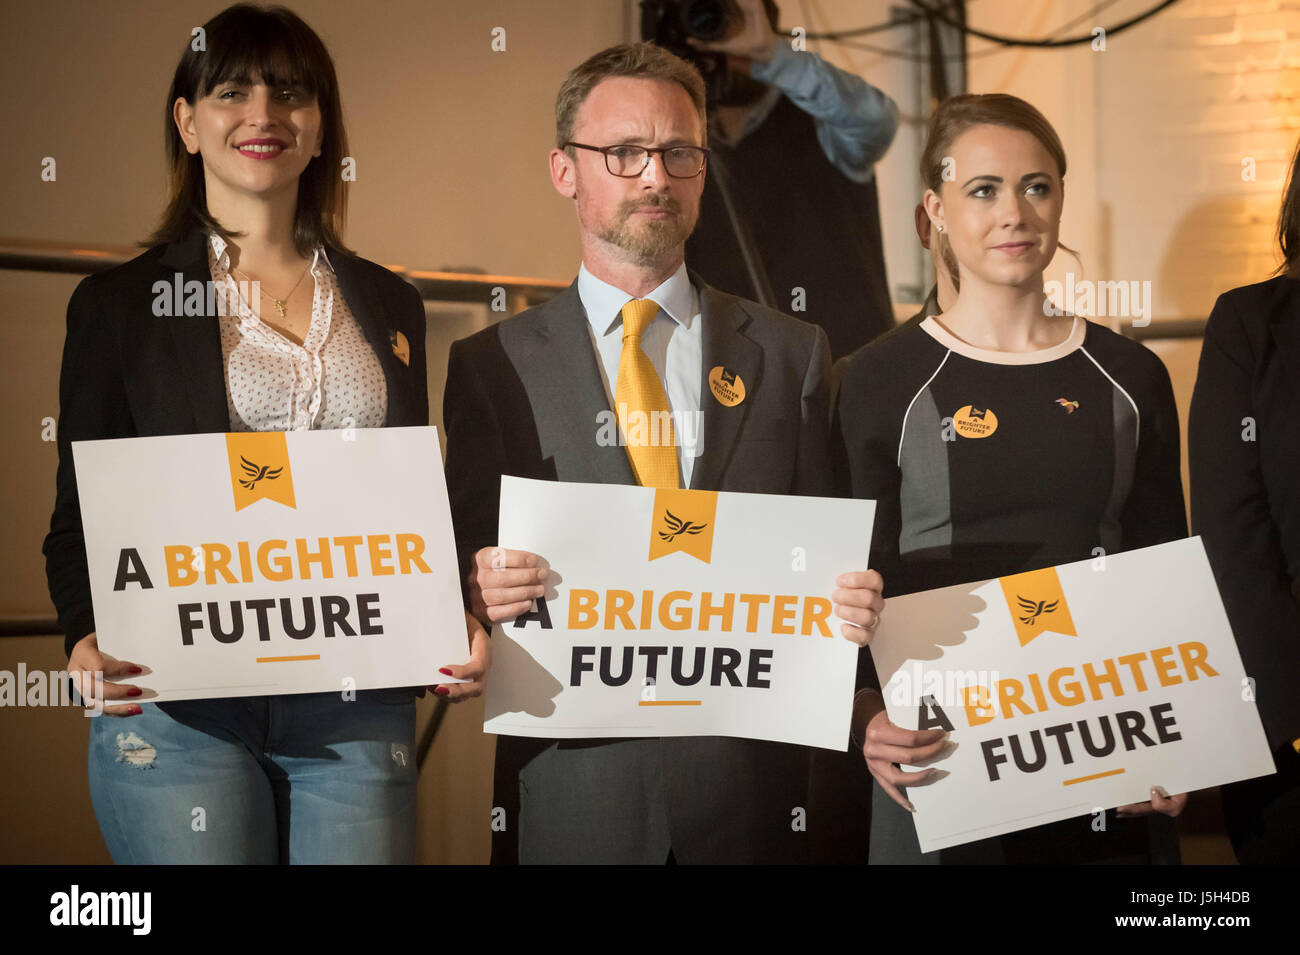 London, UK. 17th May, 2017. Supporters at The Liberal Democrats General Election Manifesto Launch.  © Guy Corbishley/Alamy - Stock Image